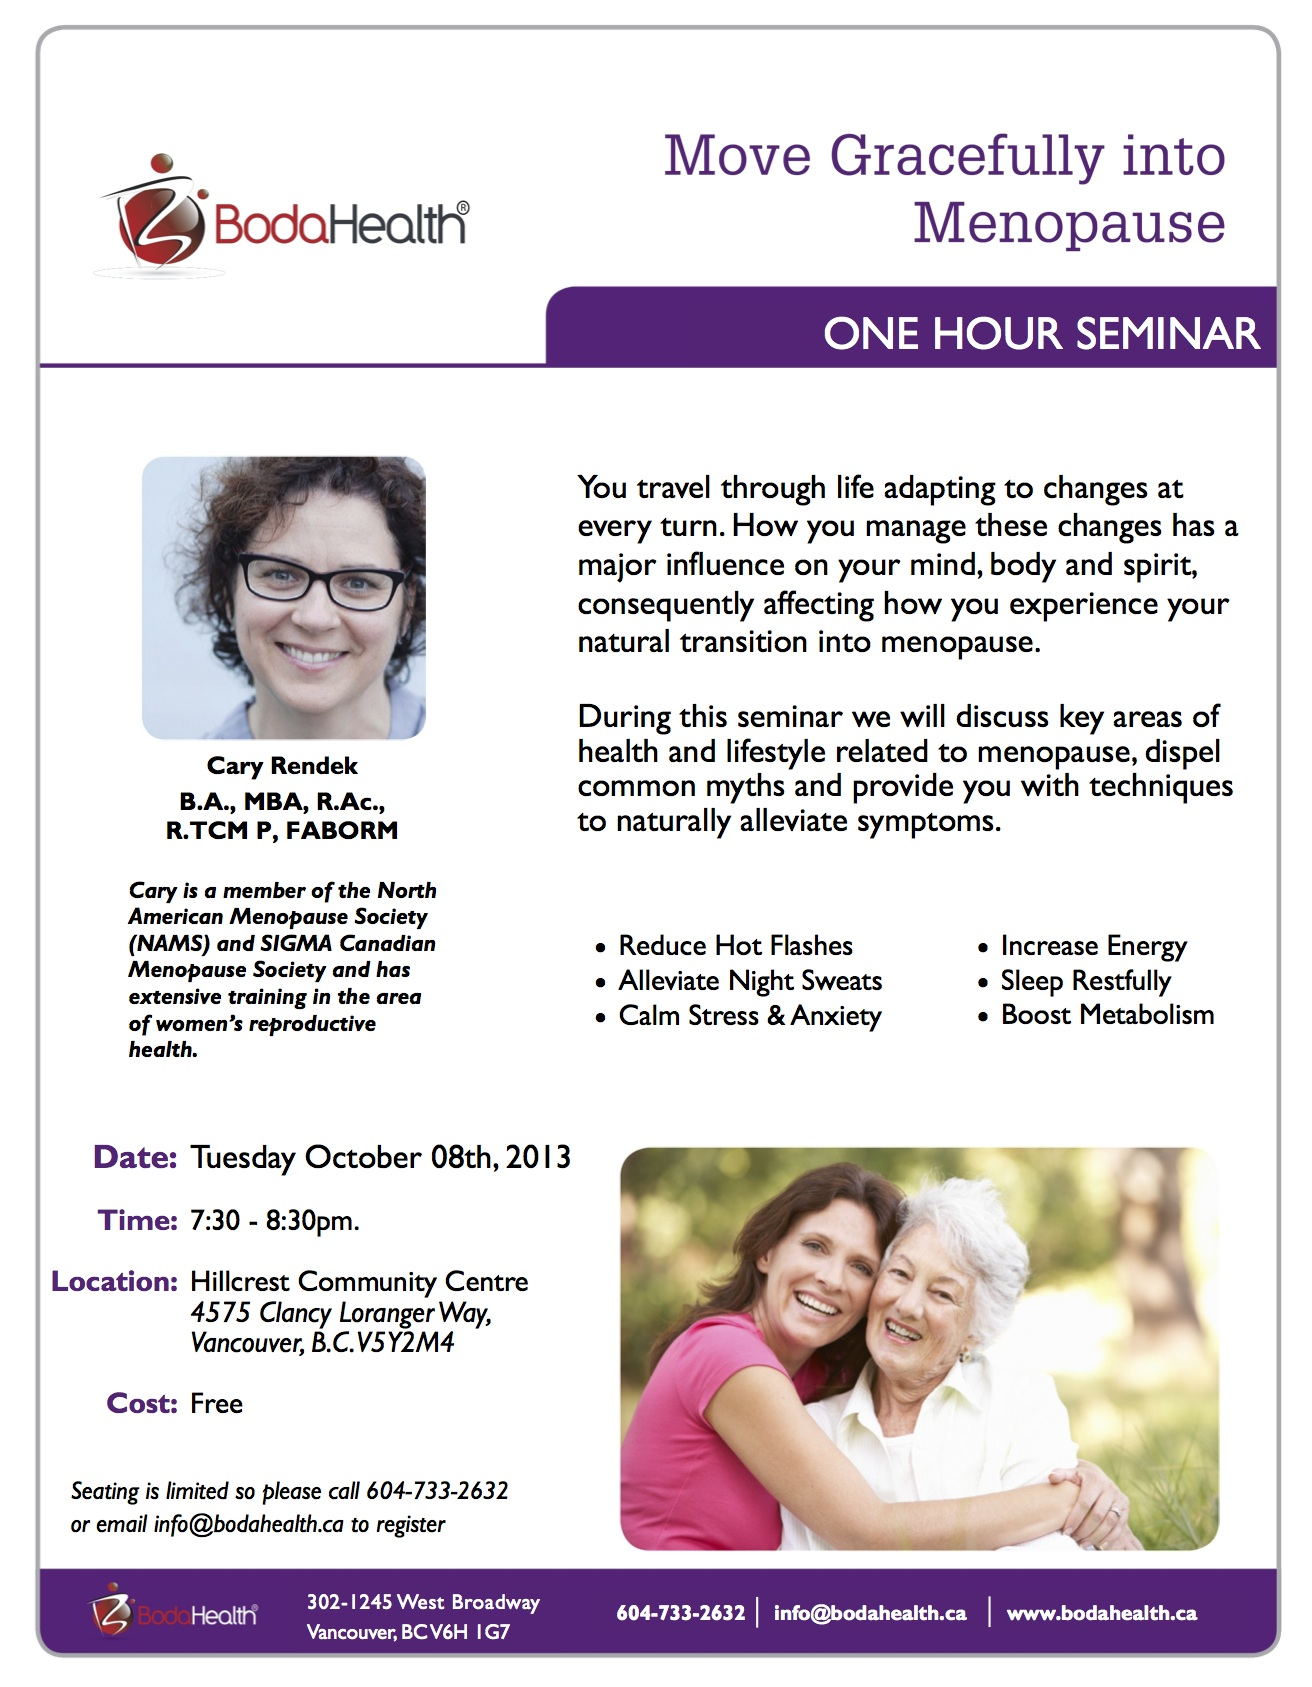 Move Gracefully into Menopause - Bodahealth